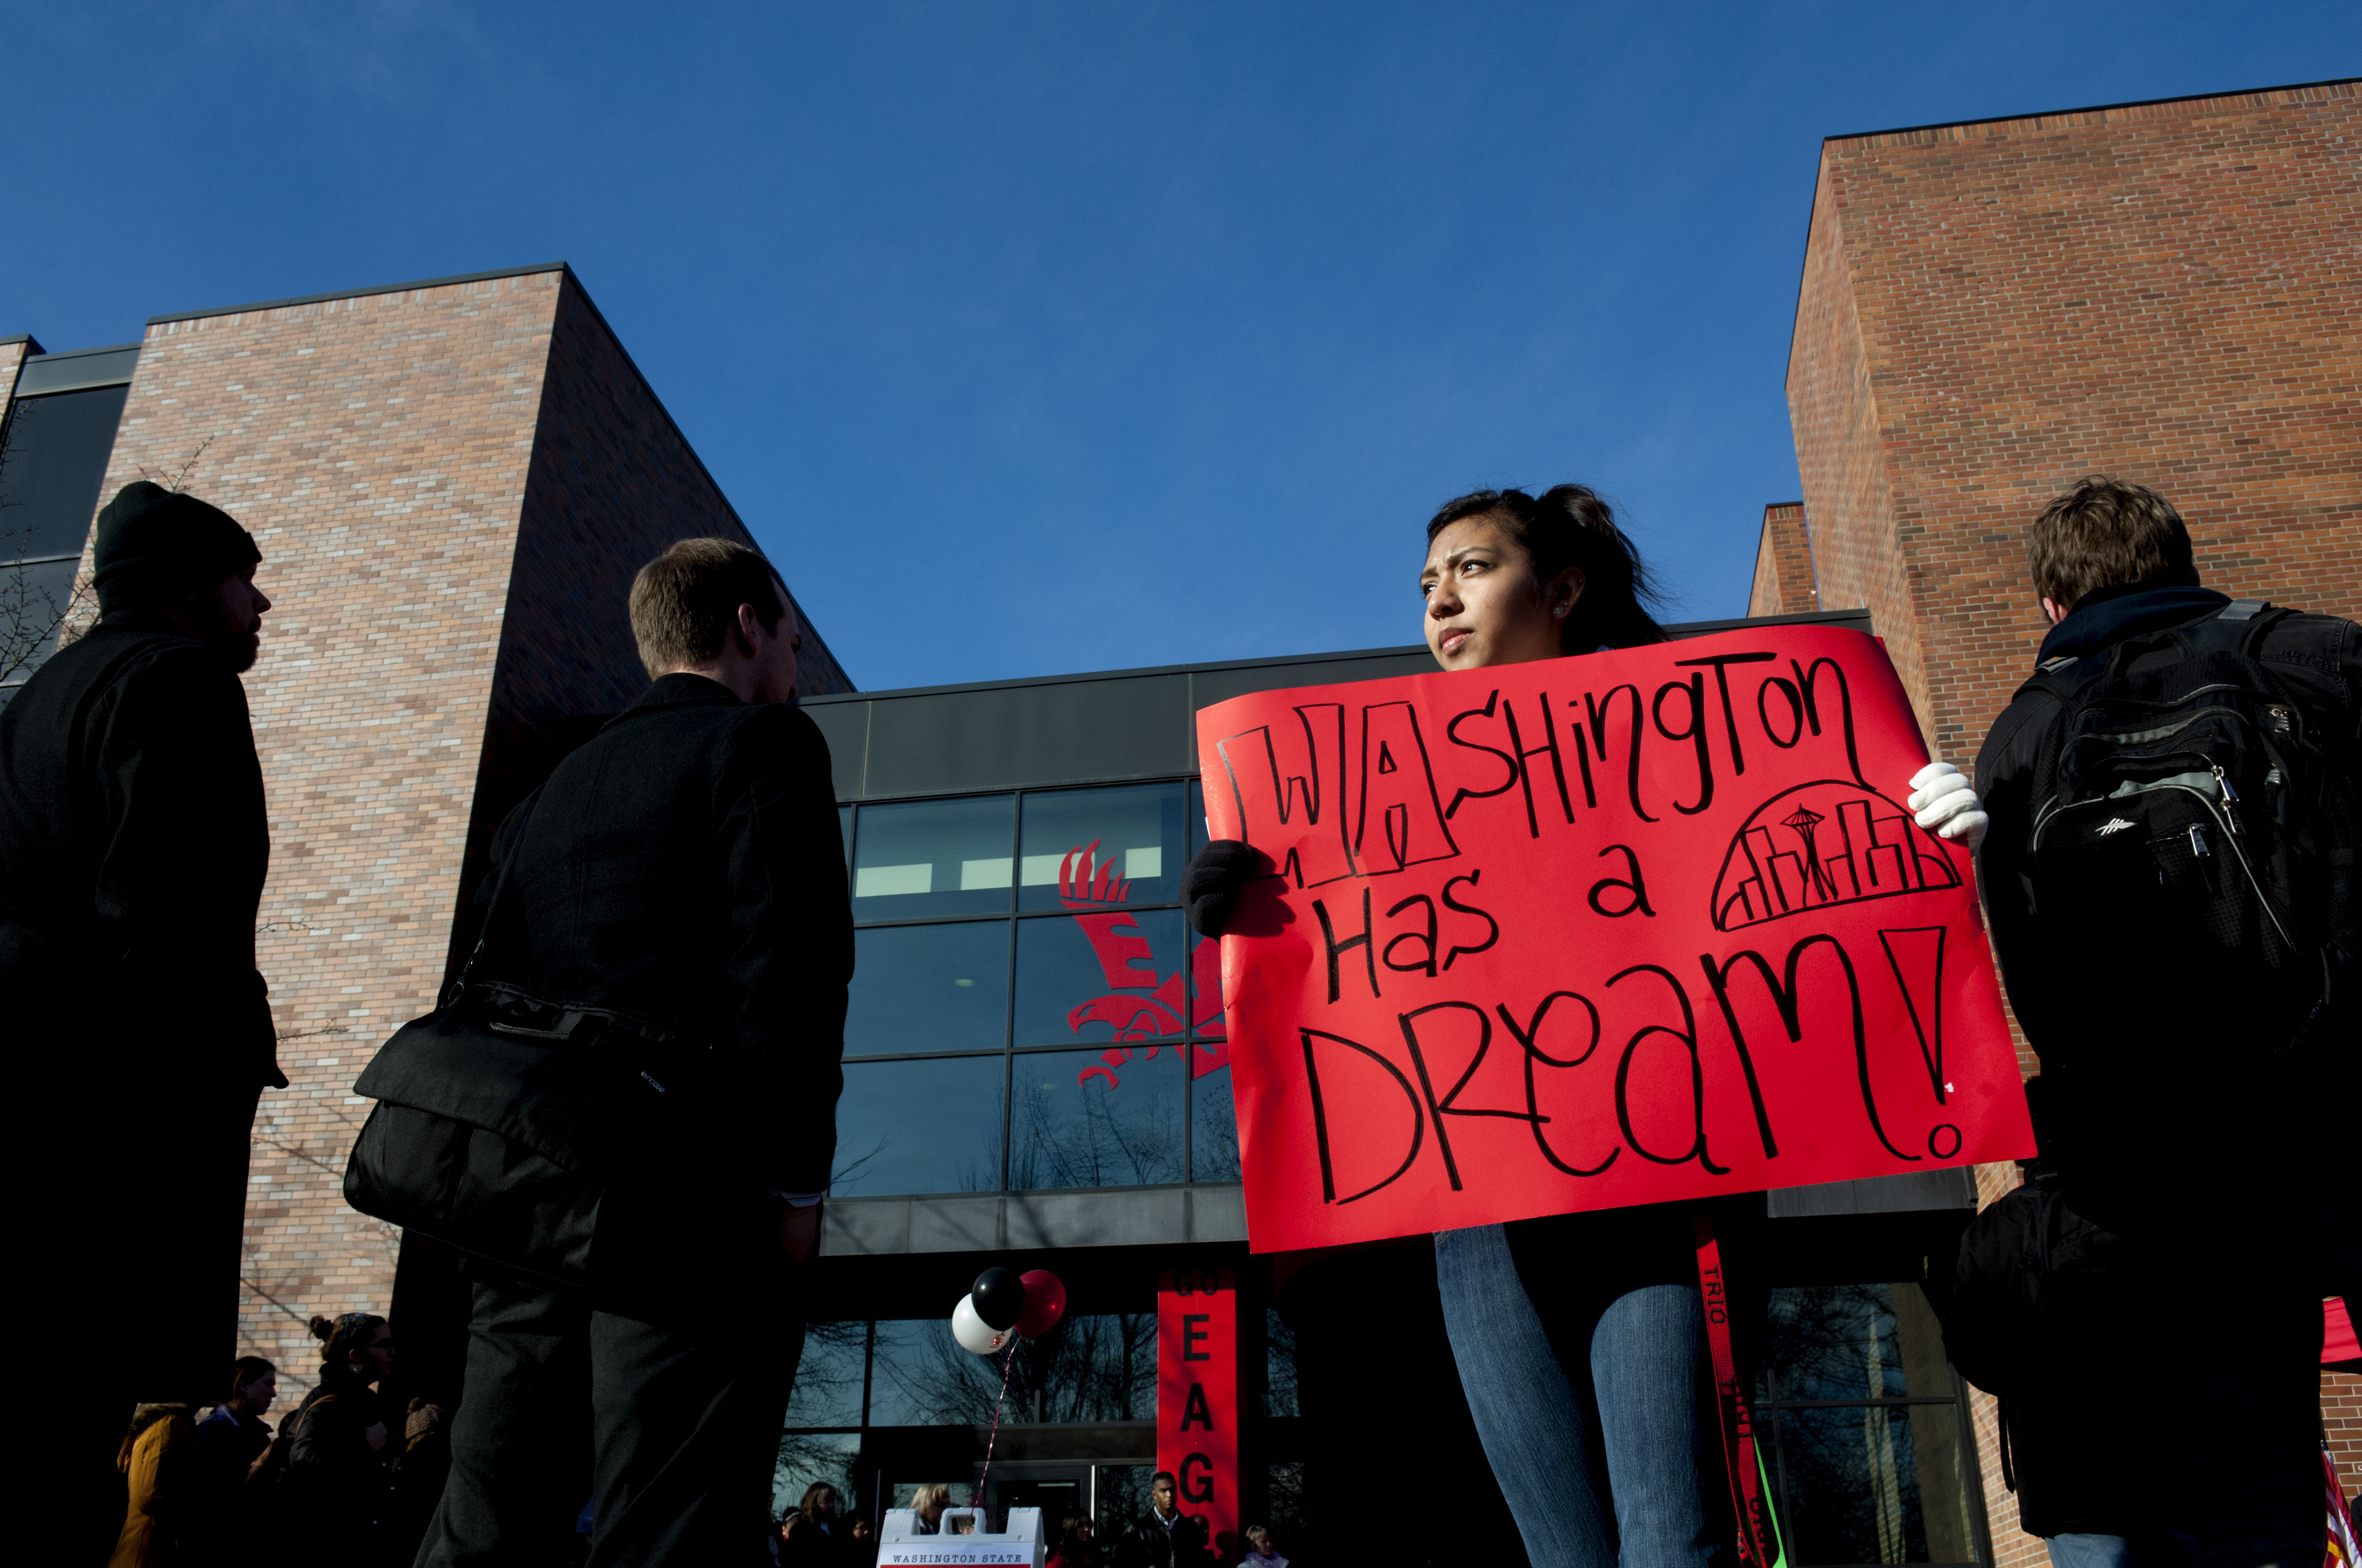 Undocumented students work to pass financial aid act | The ...